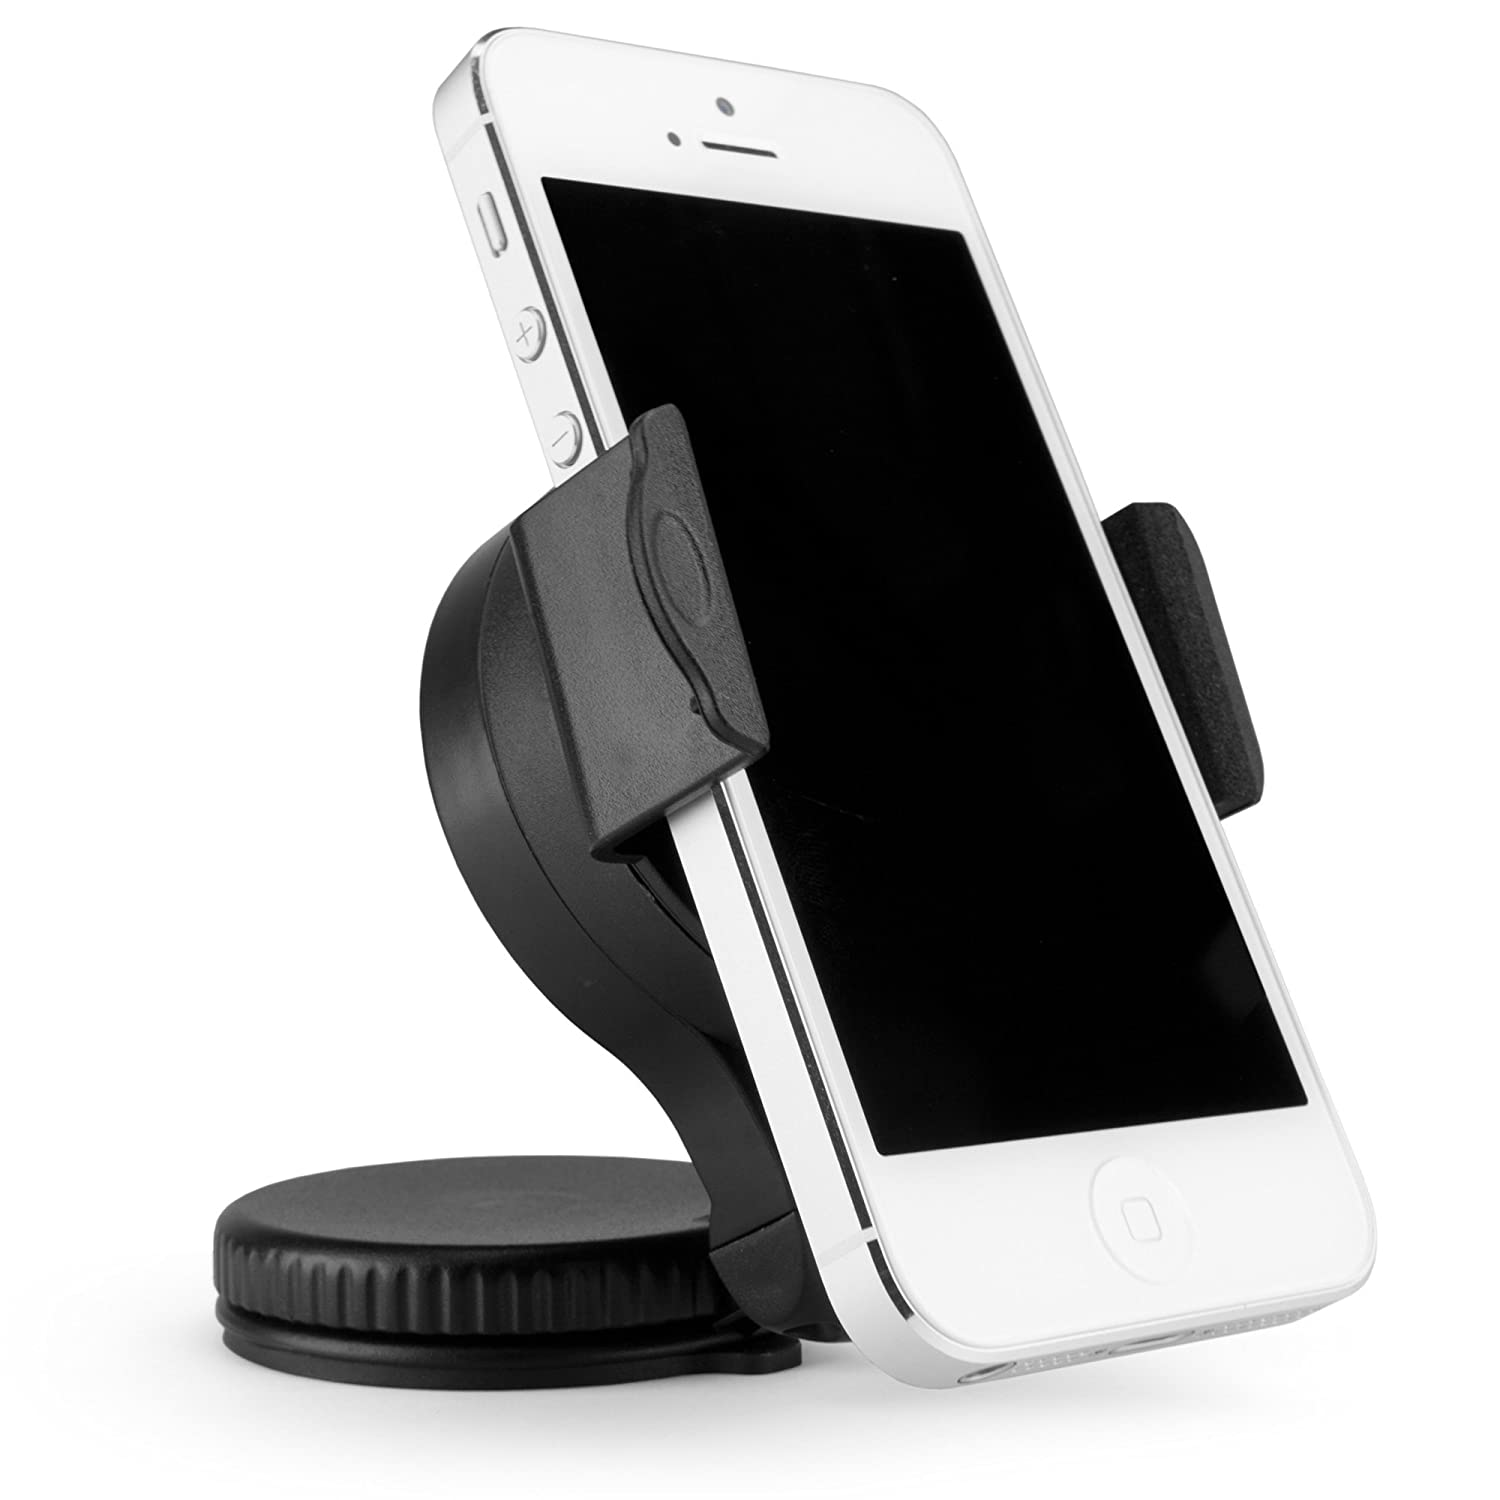 Suction Mounted Car Mount with Adjustable Clamp for AT/&T Mobile Hotspot MiFi 2372 BoxWave Corporation 4352725511 AT/&T Mobile Hotspot MiFi 2372 Car Mount BoxWave TinyMount